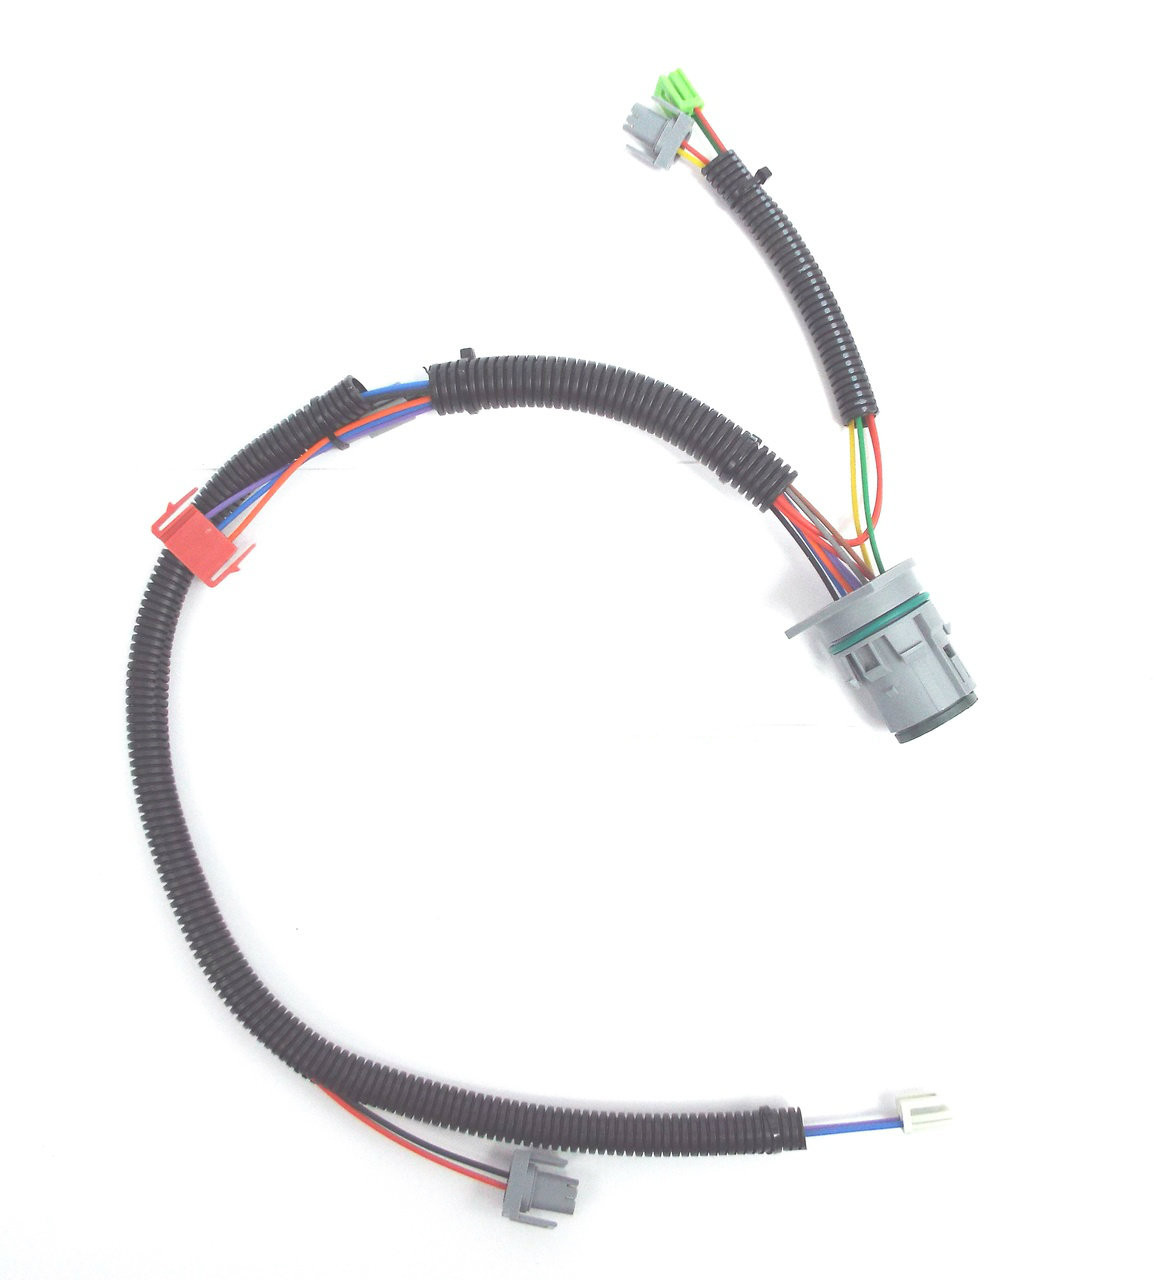 4l80e Transmission Internal Wiring Harness Best Electrical Circuit Plug Diagram 2004 Up 24200161 Global Rh Globaltransmissionparts Com 1993 1995 Chevy